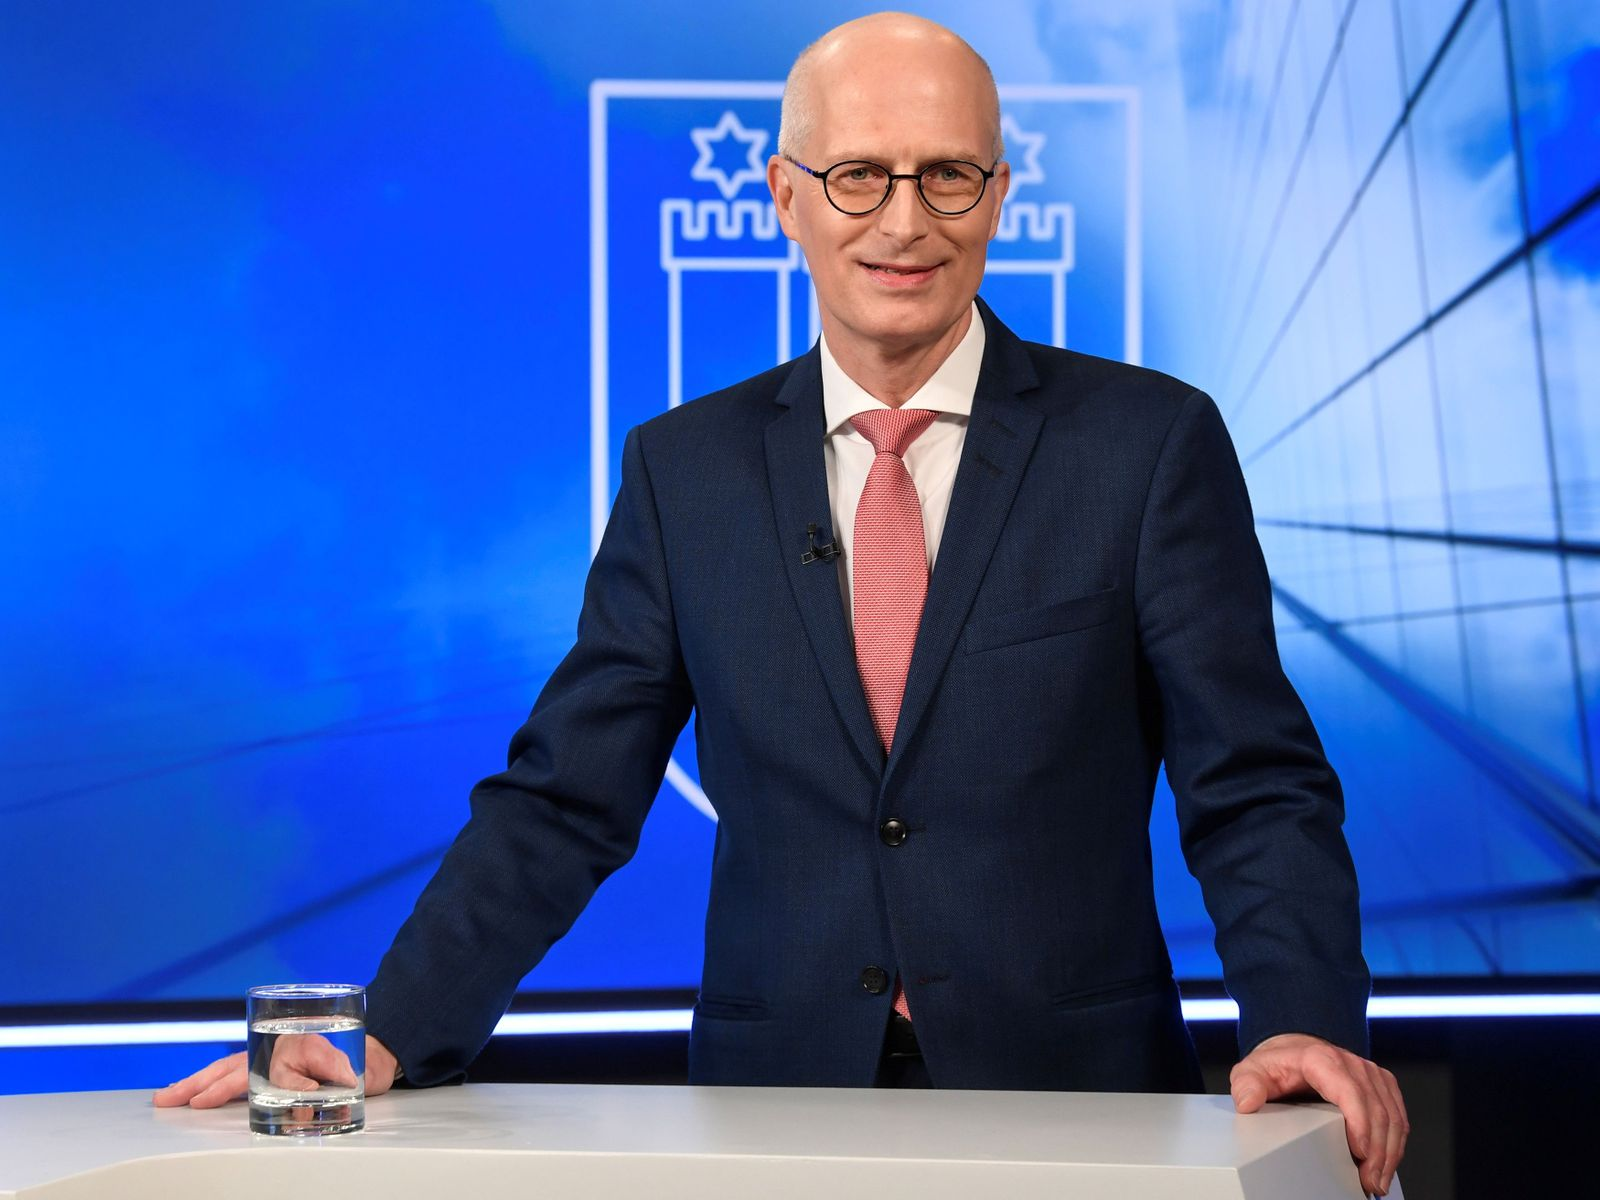 FILE PHOTO: Top candidate and mayor of Hamburg Peter Tschentscher of the Social Democrats (SPD) poses for the media before a TV debate with his challenger Katharina Fegebank of the Greens in Hamburg